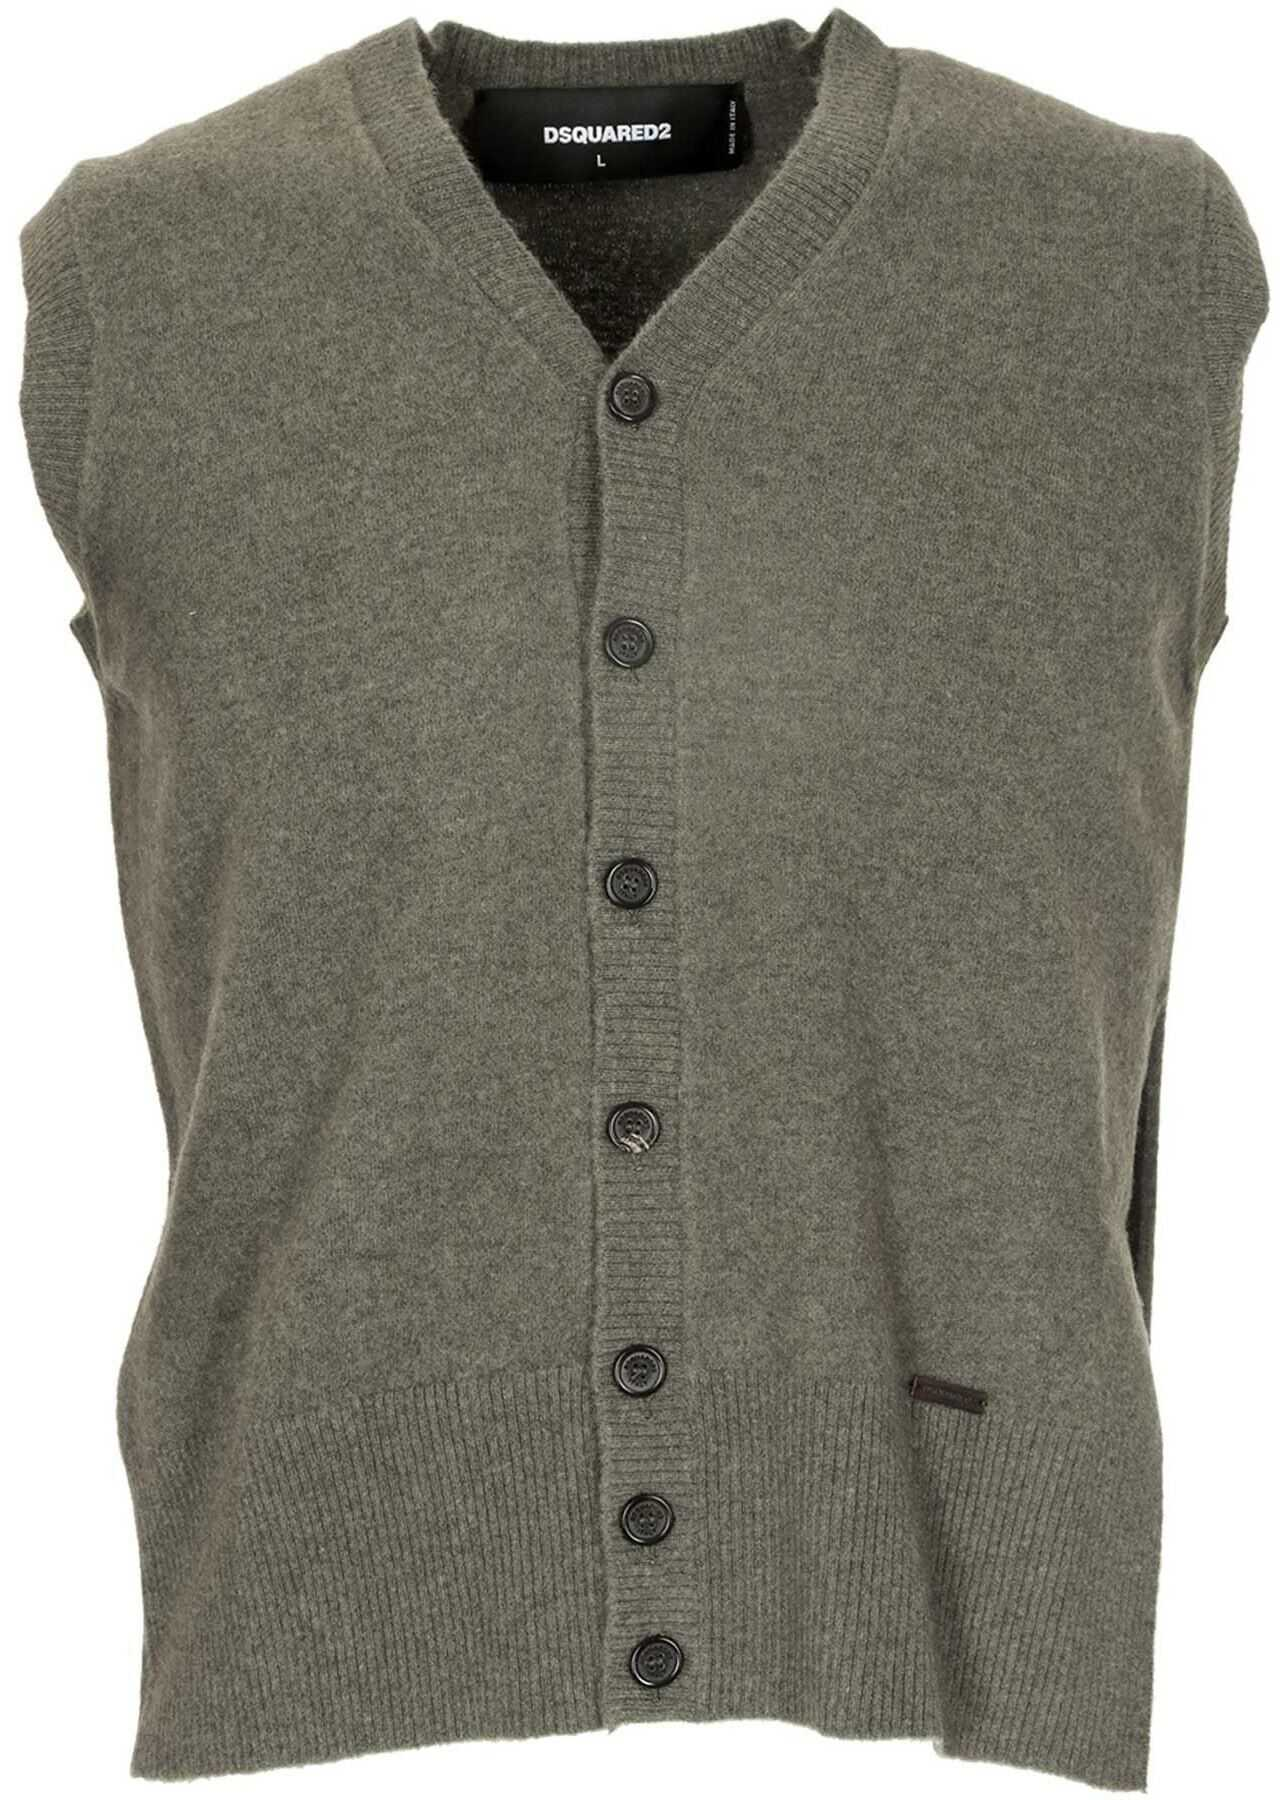 DSQUARED2 Buttoned Vest In Green Green imagine